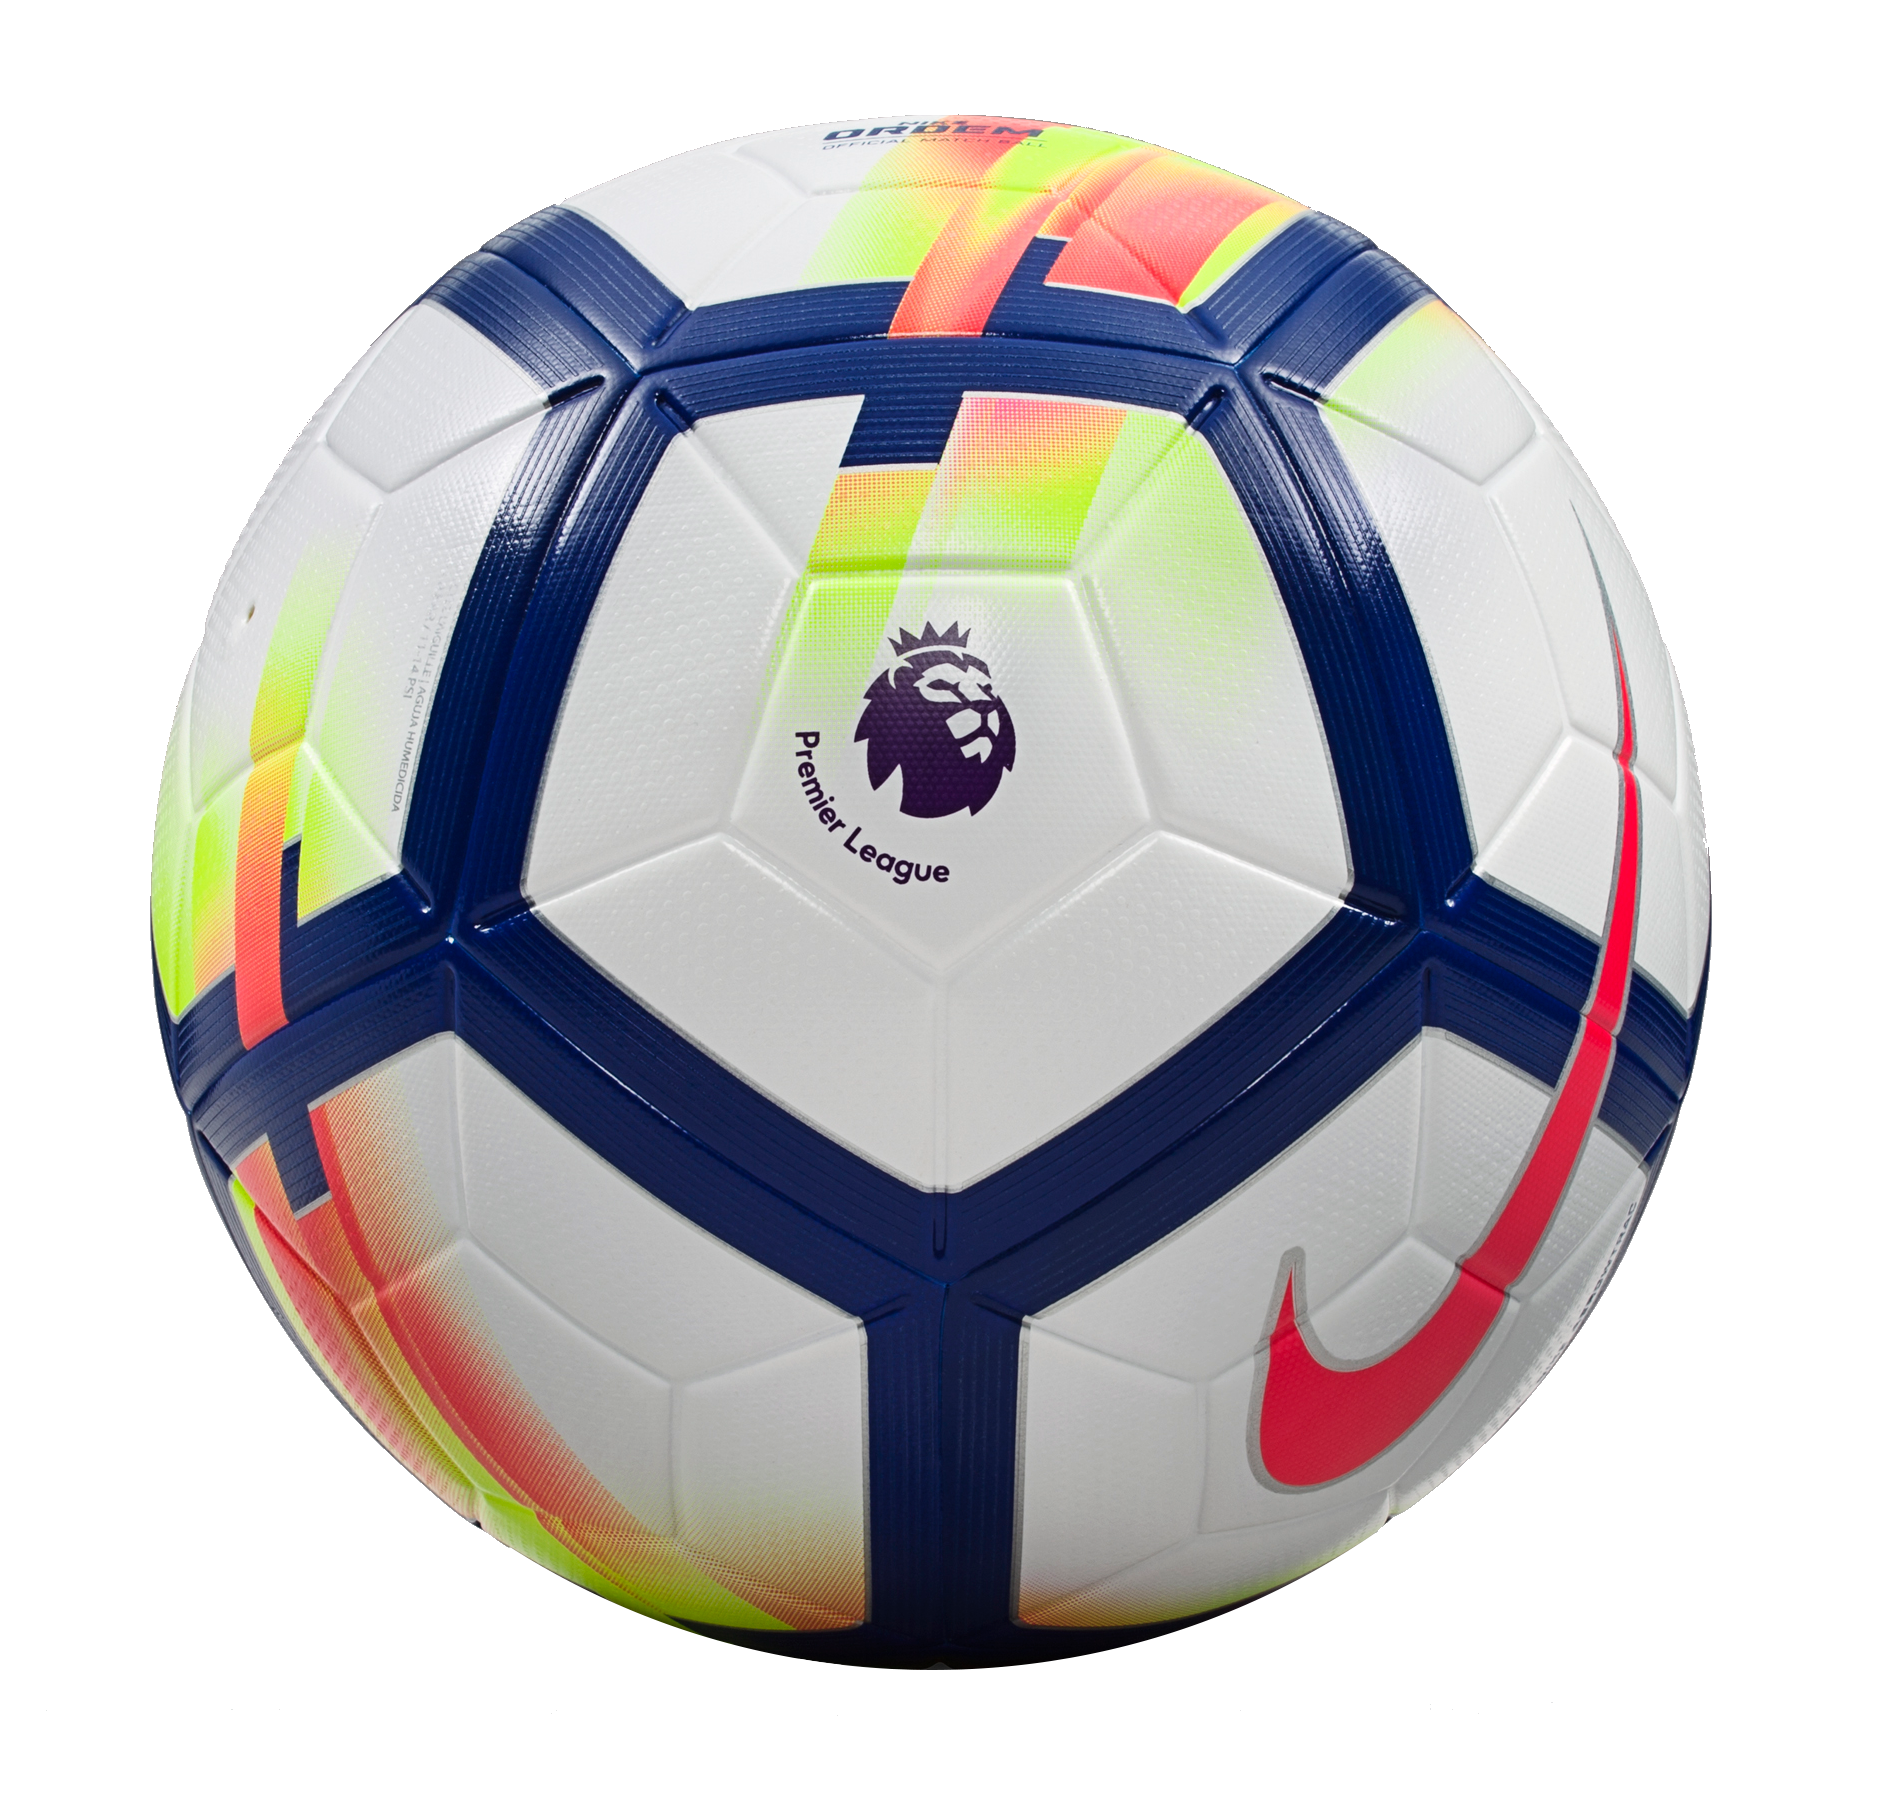 Nike - Official Ball of the Premier League